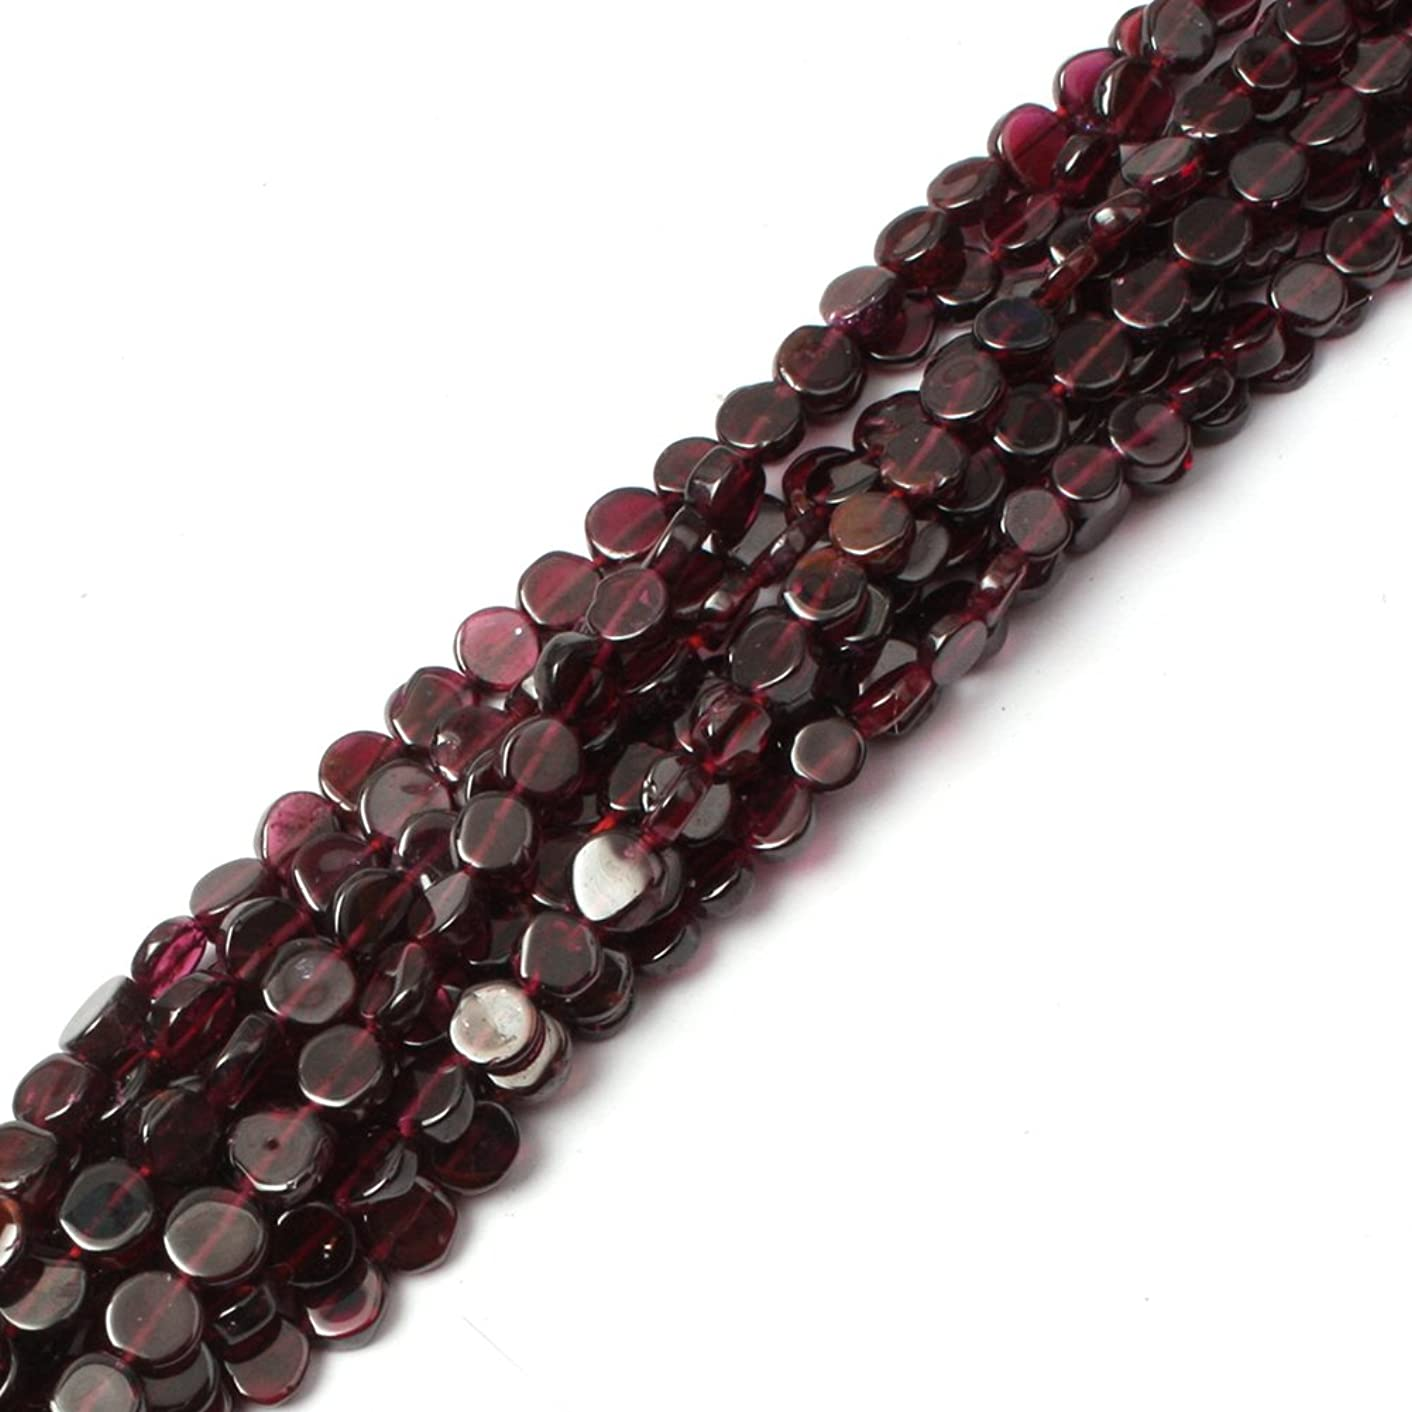 Garnet Beads for Jewelry Making Natural Gemstone Semi Precious 6mm Coin 15